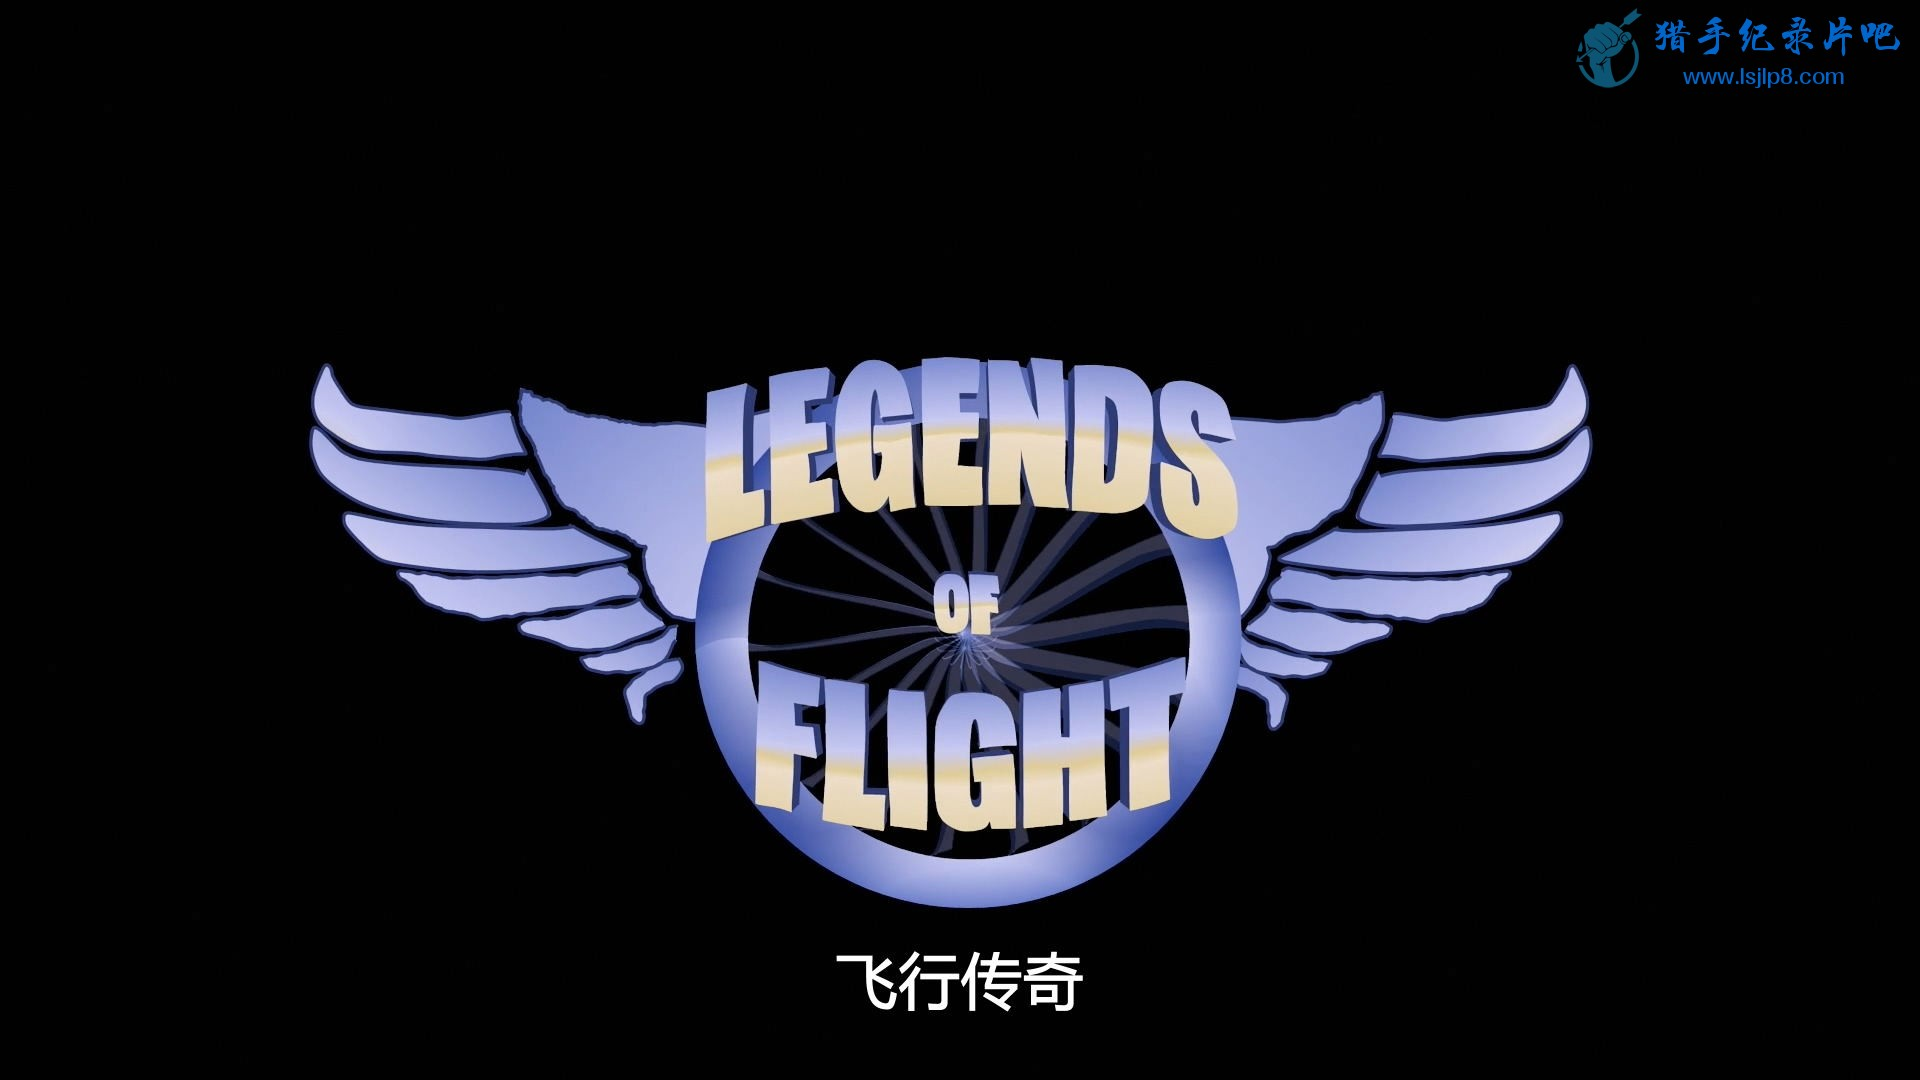 legends.of.flight.2010.1080p.bluray.x264-fasthd.mkv_20200601_090059.484_看图王.jpg